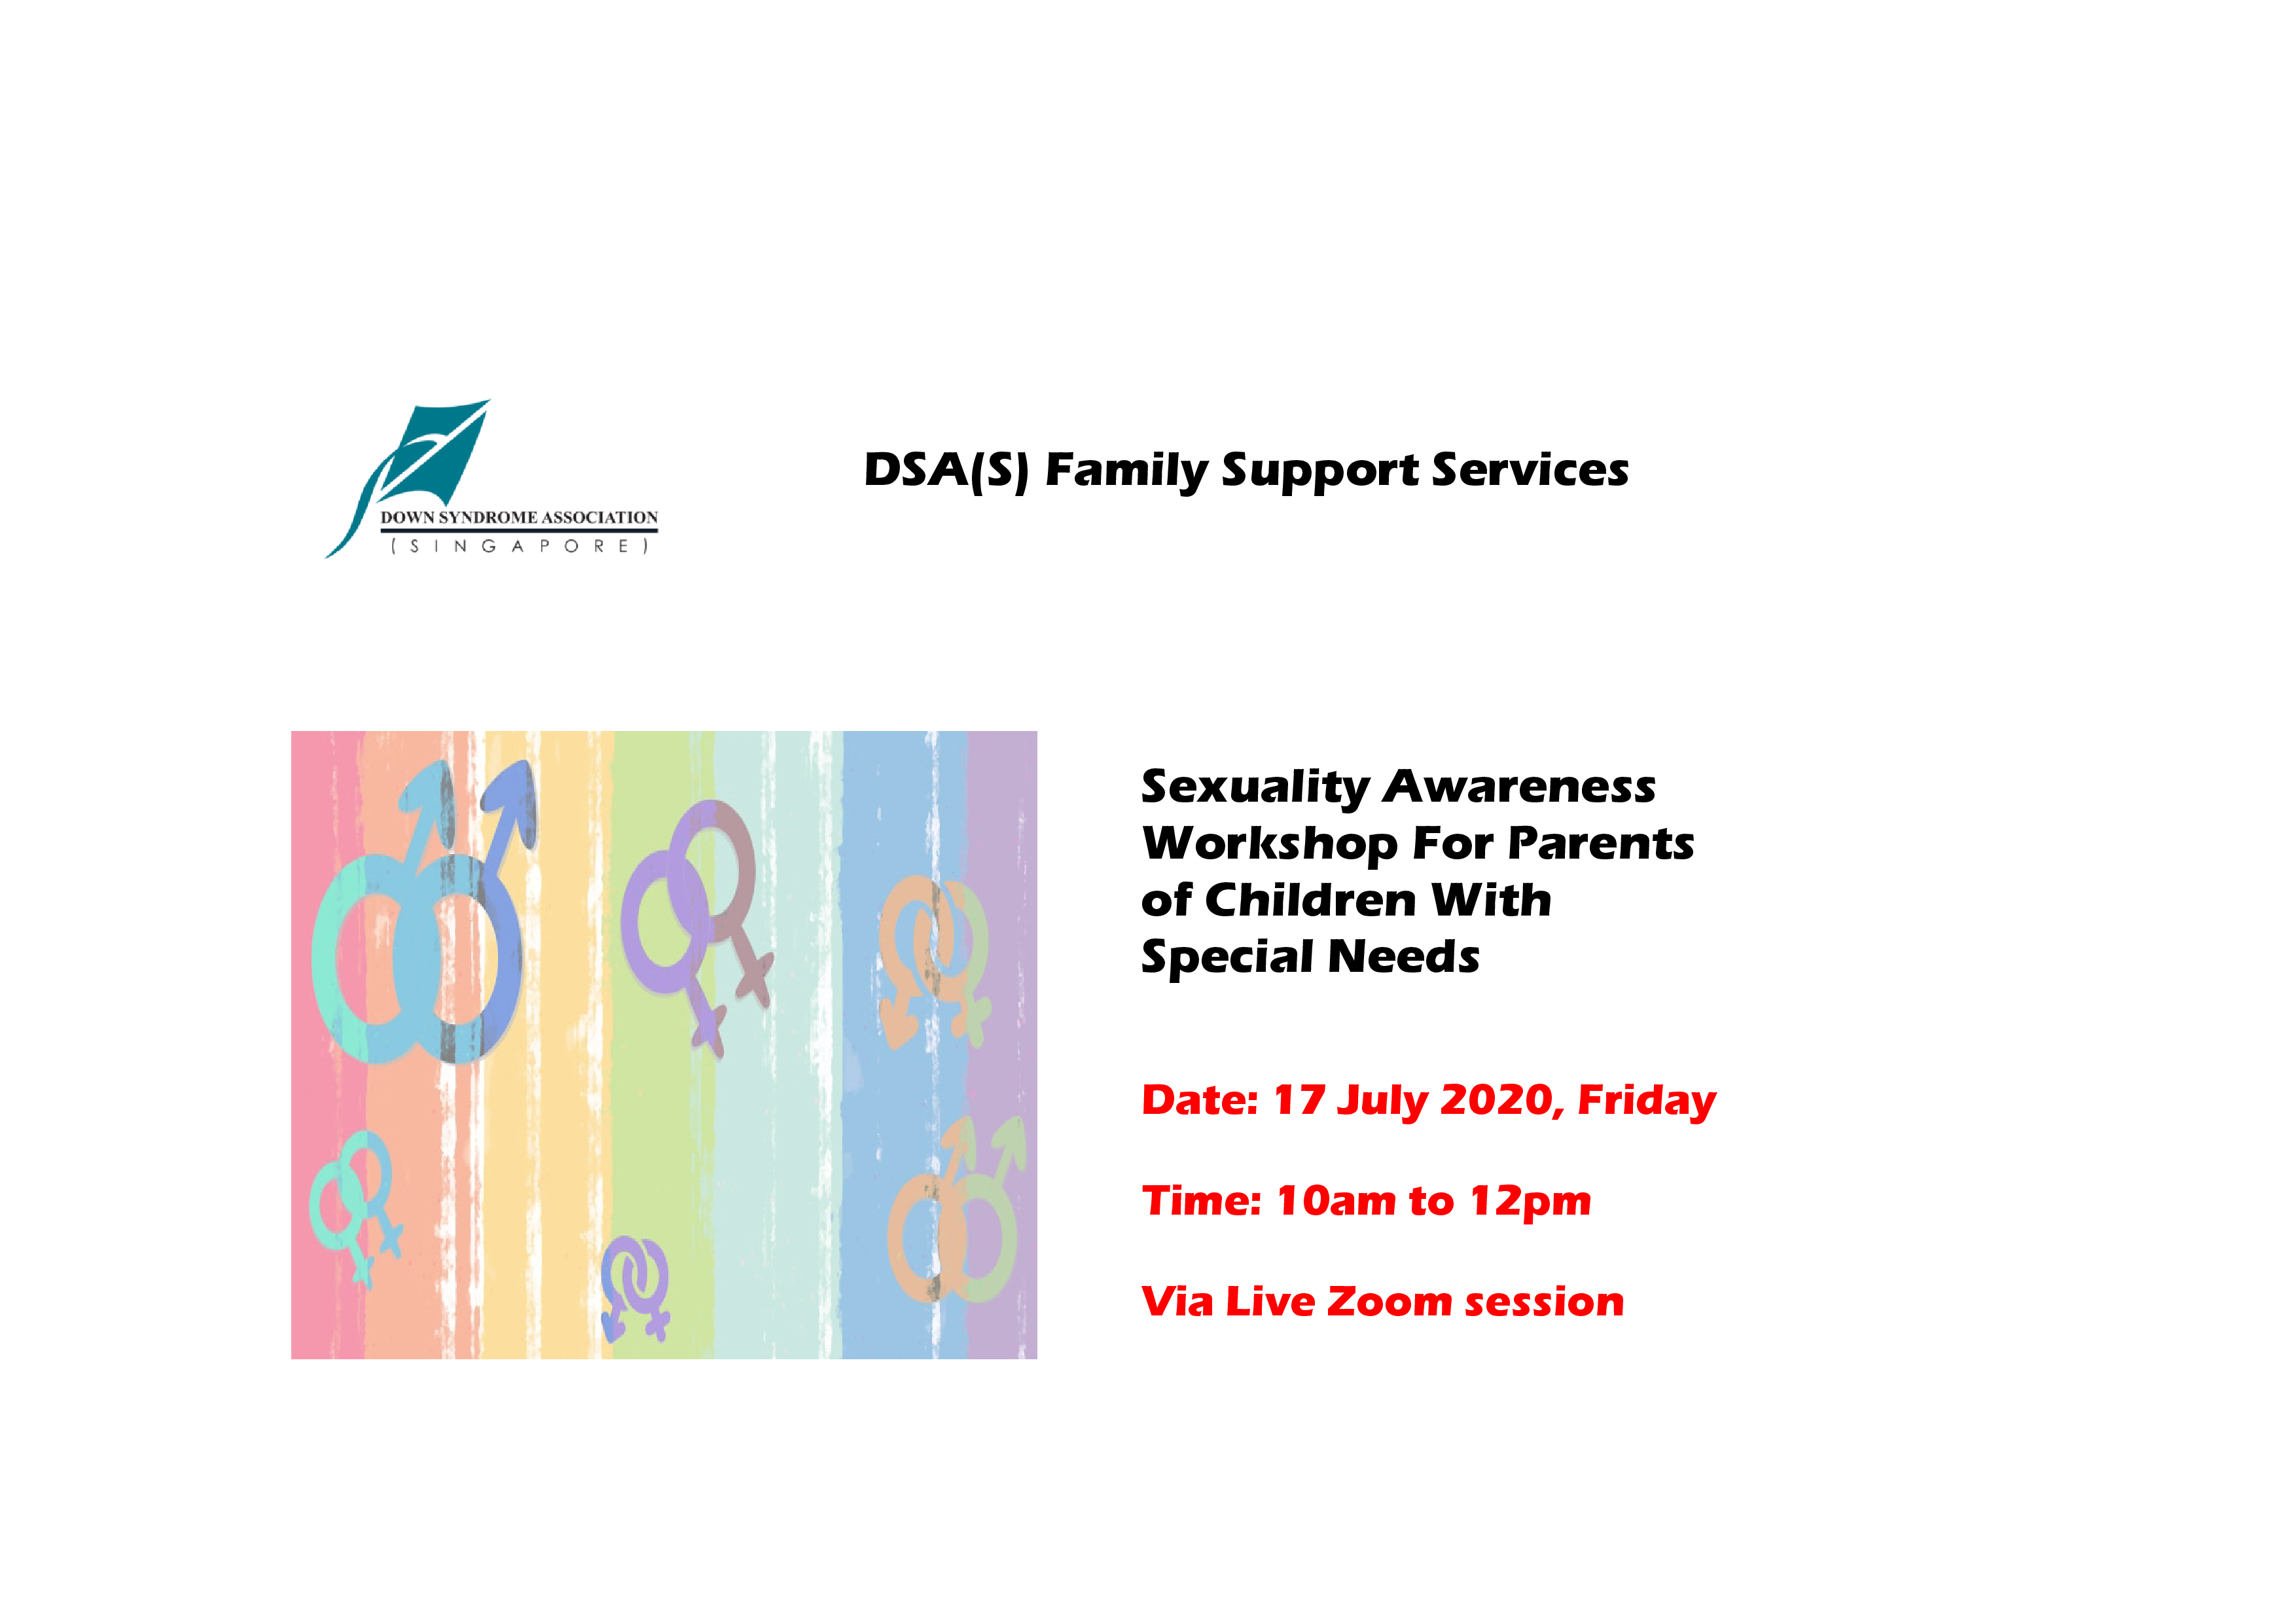 DSA Online Workshop - Sexuality Awareness Workshop For Parents Of Children With Special Needs